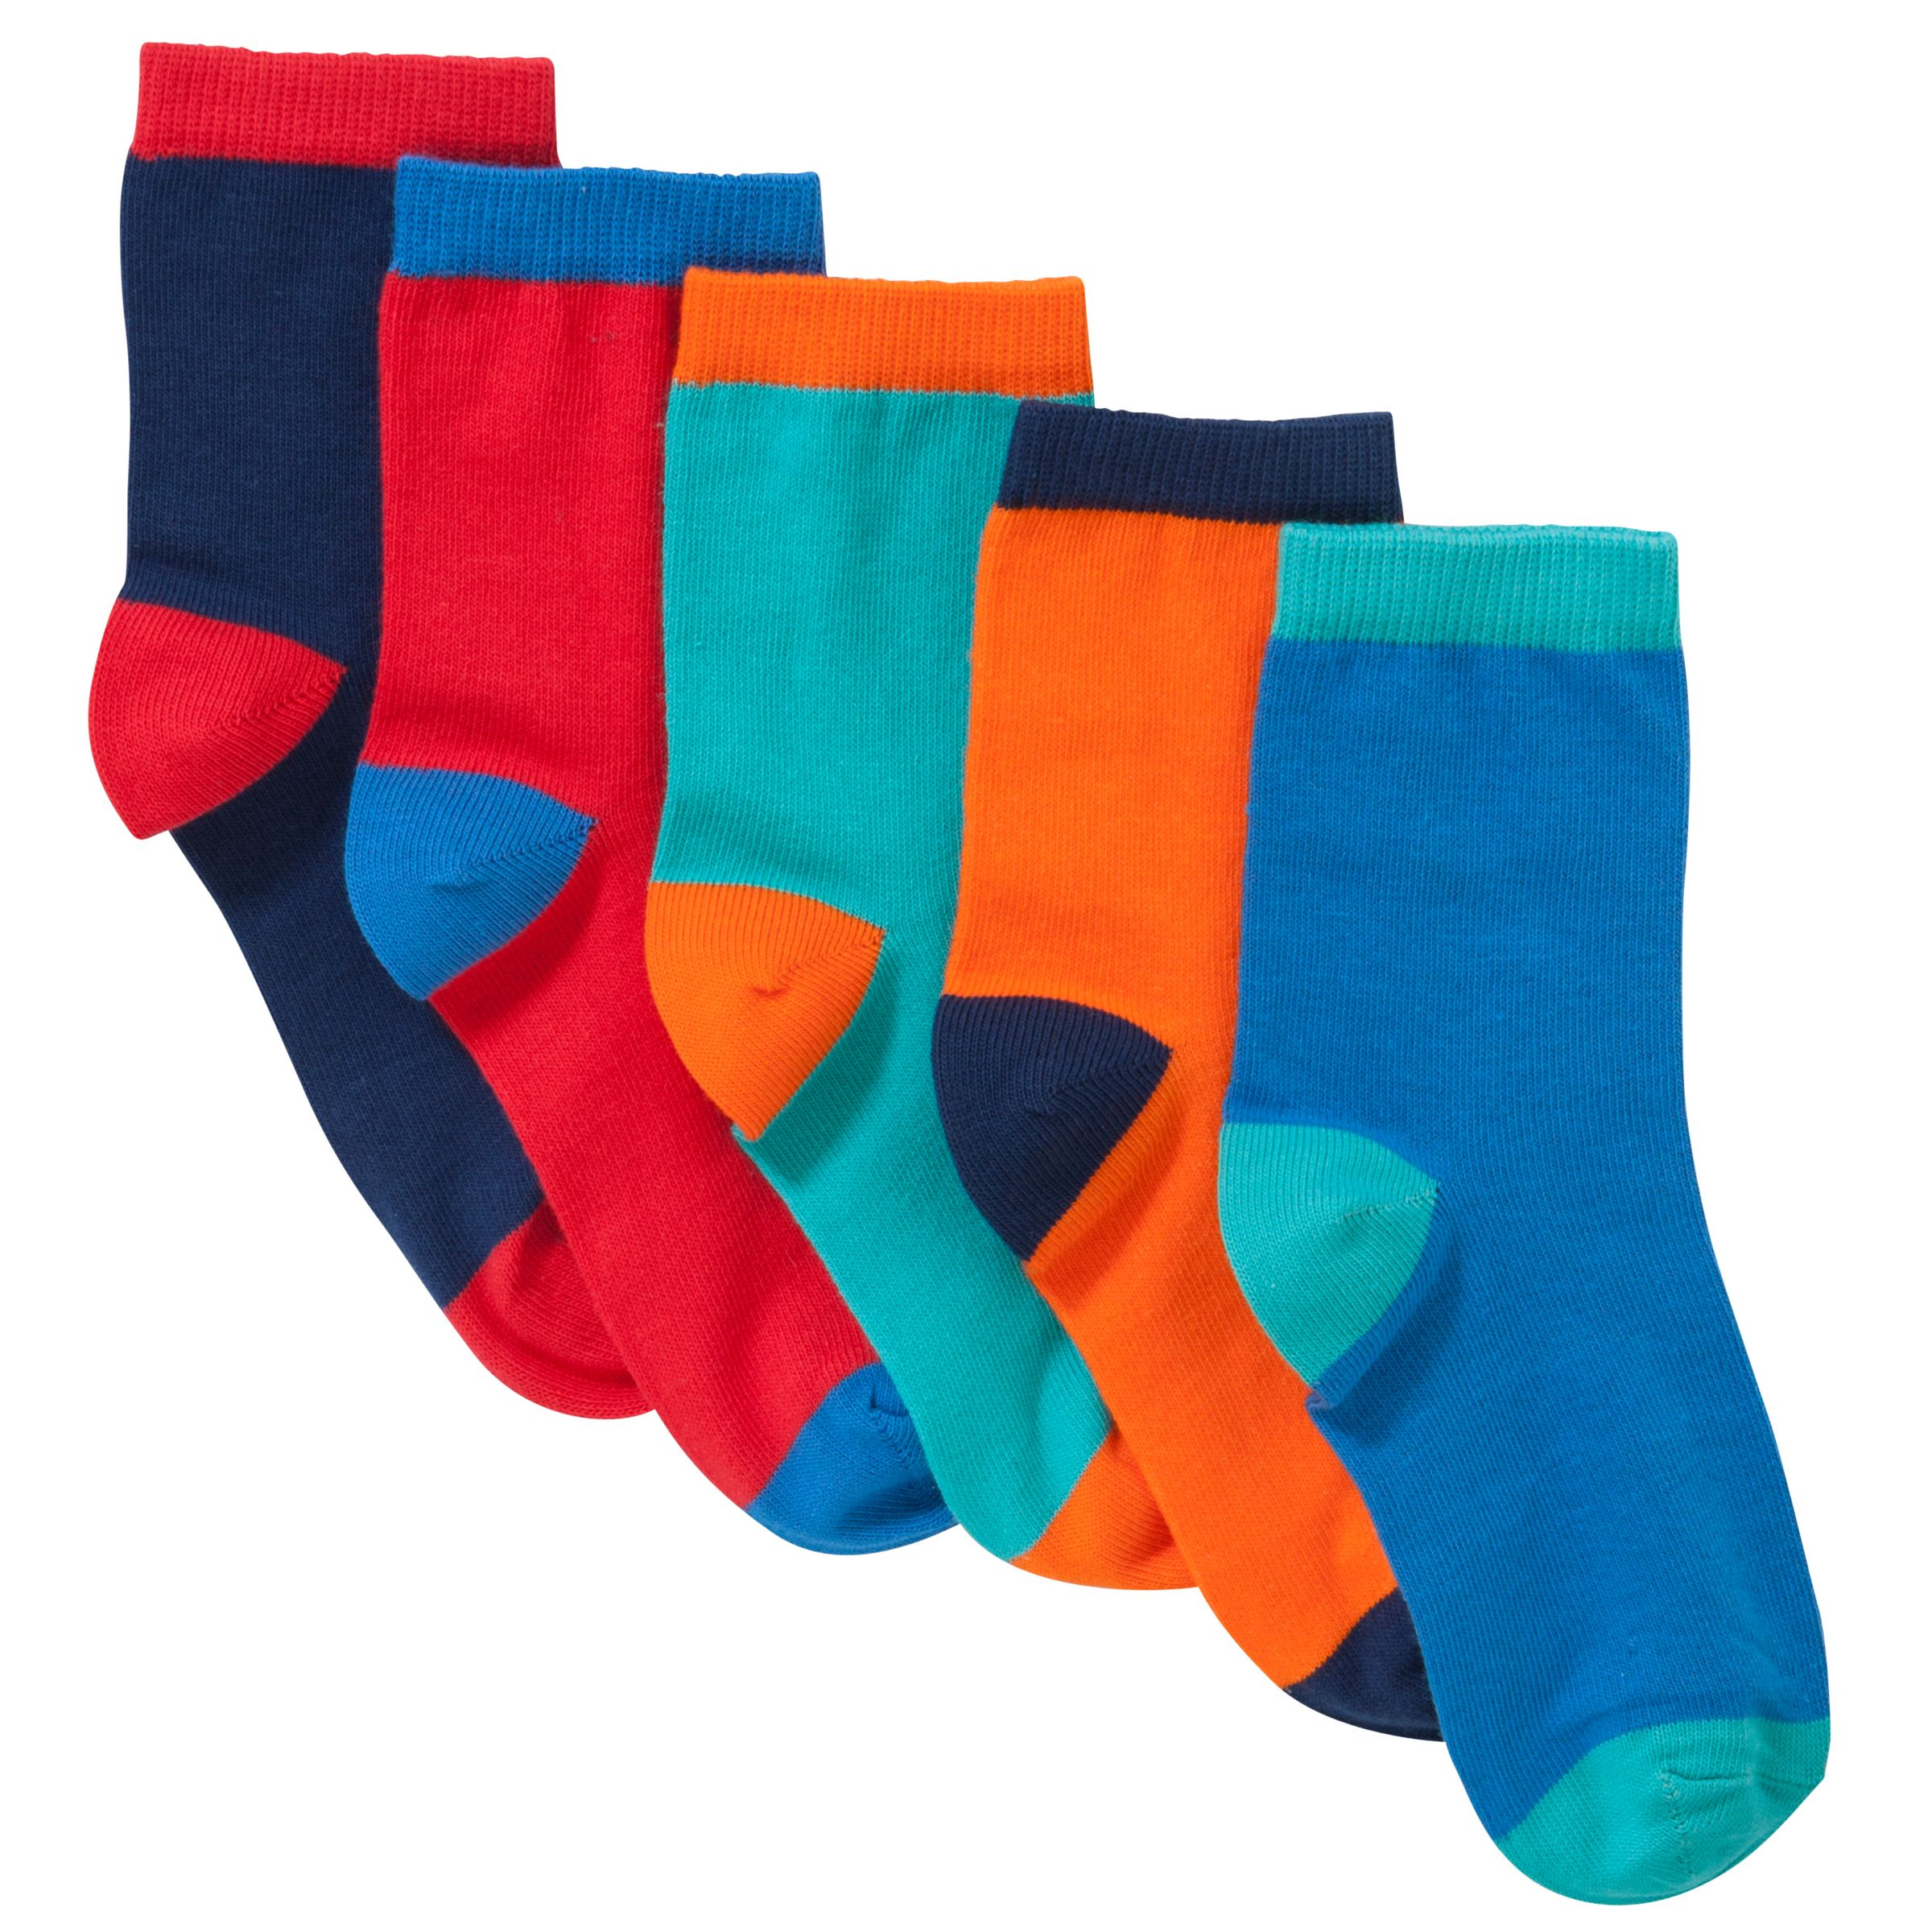 John Lewis Boy Contrast Heel Socks, Pack of 5, Multi